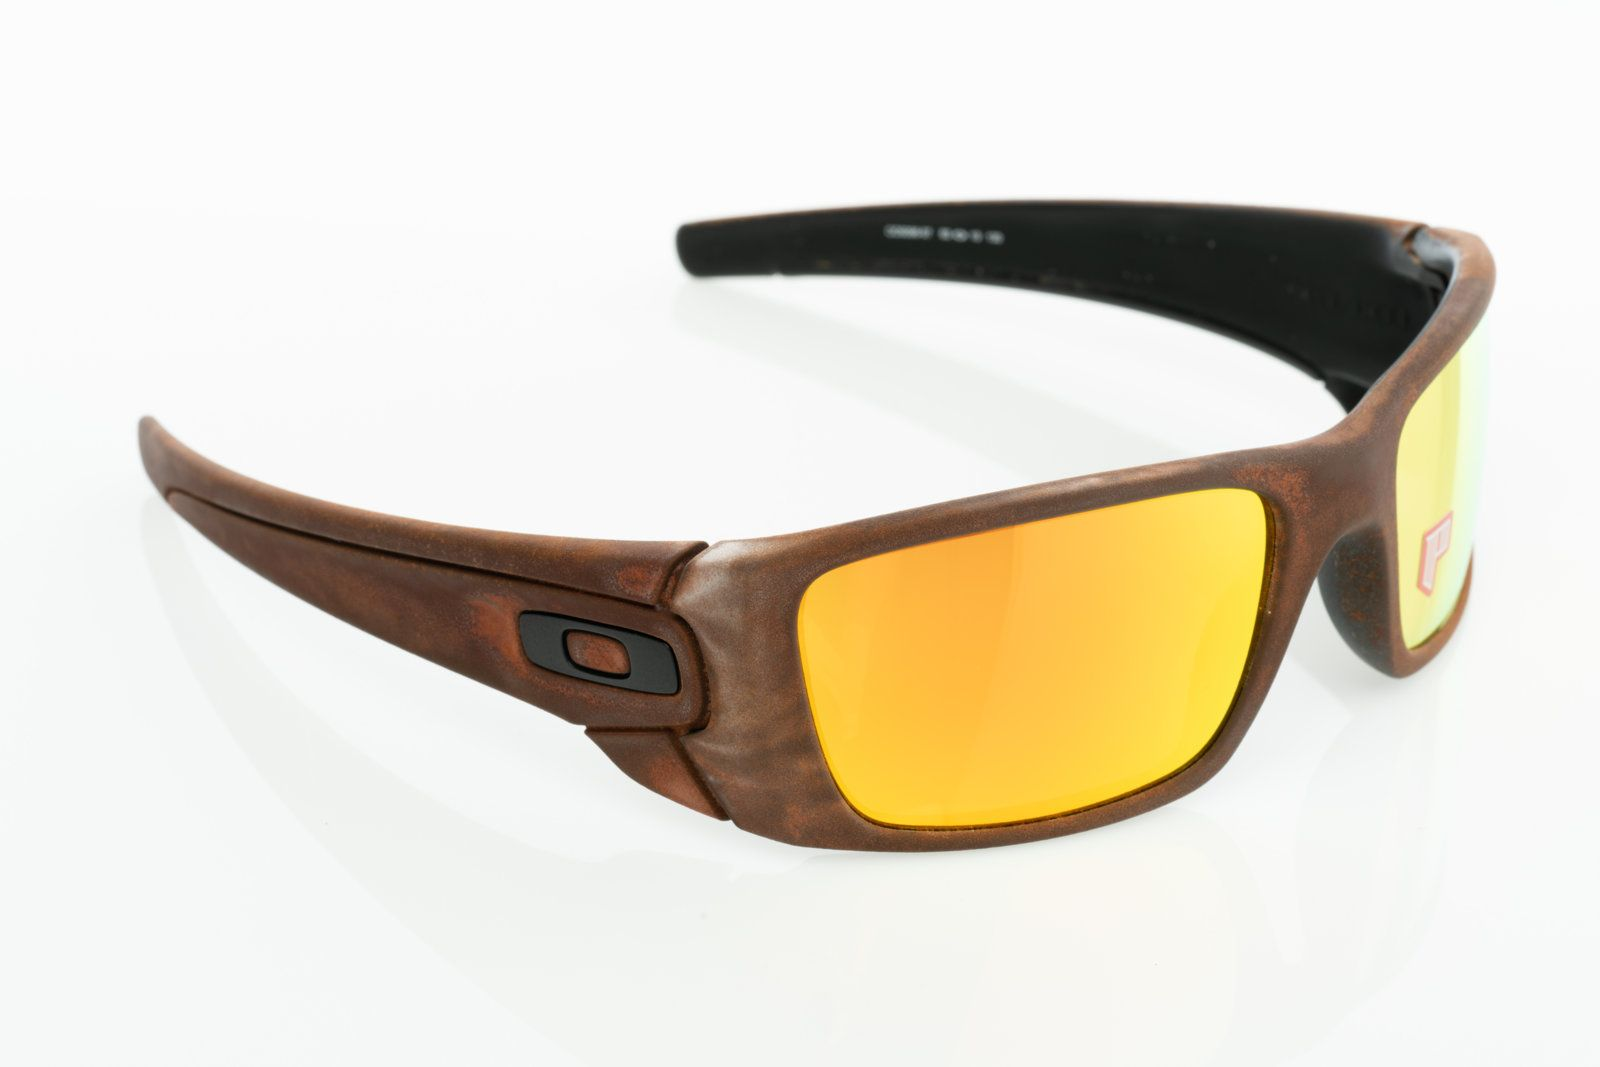 bf8477031c67 ... discount code for nib oakley fuel cell fallout collection limited  edition rust decay with fire iridium